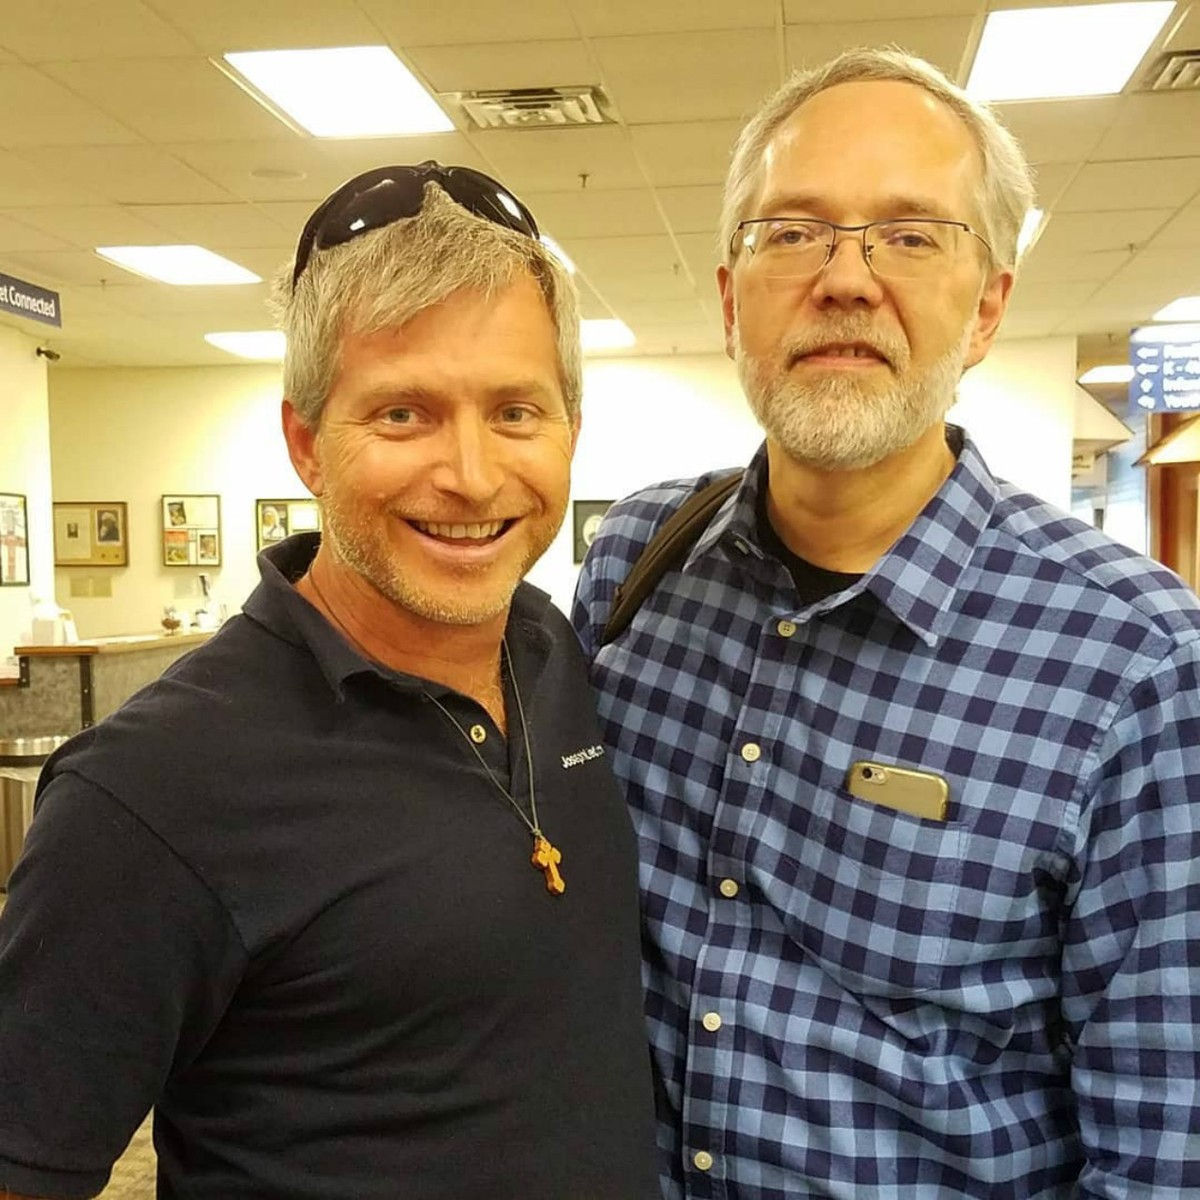 Rob and Dr. Heiser